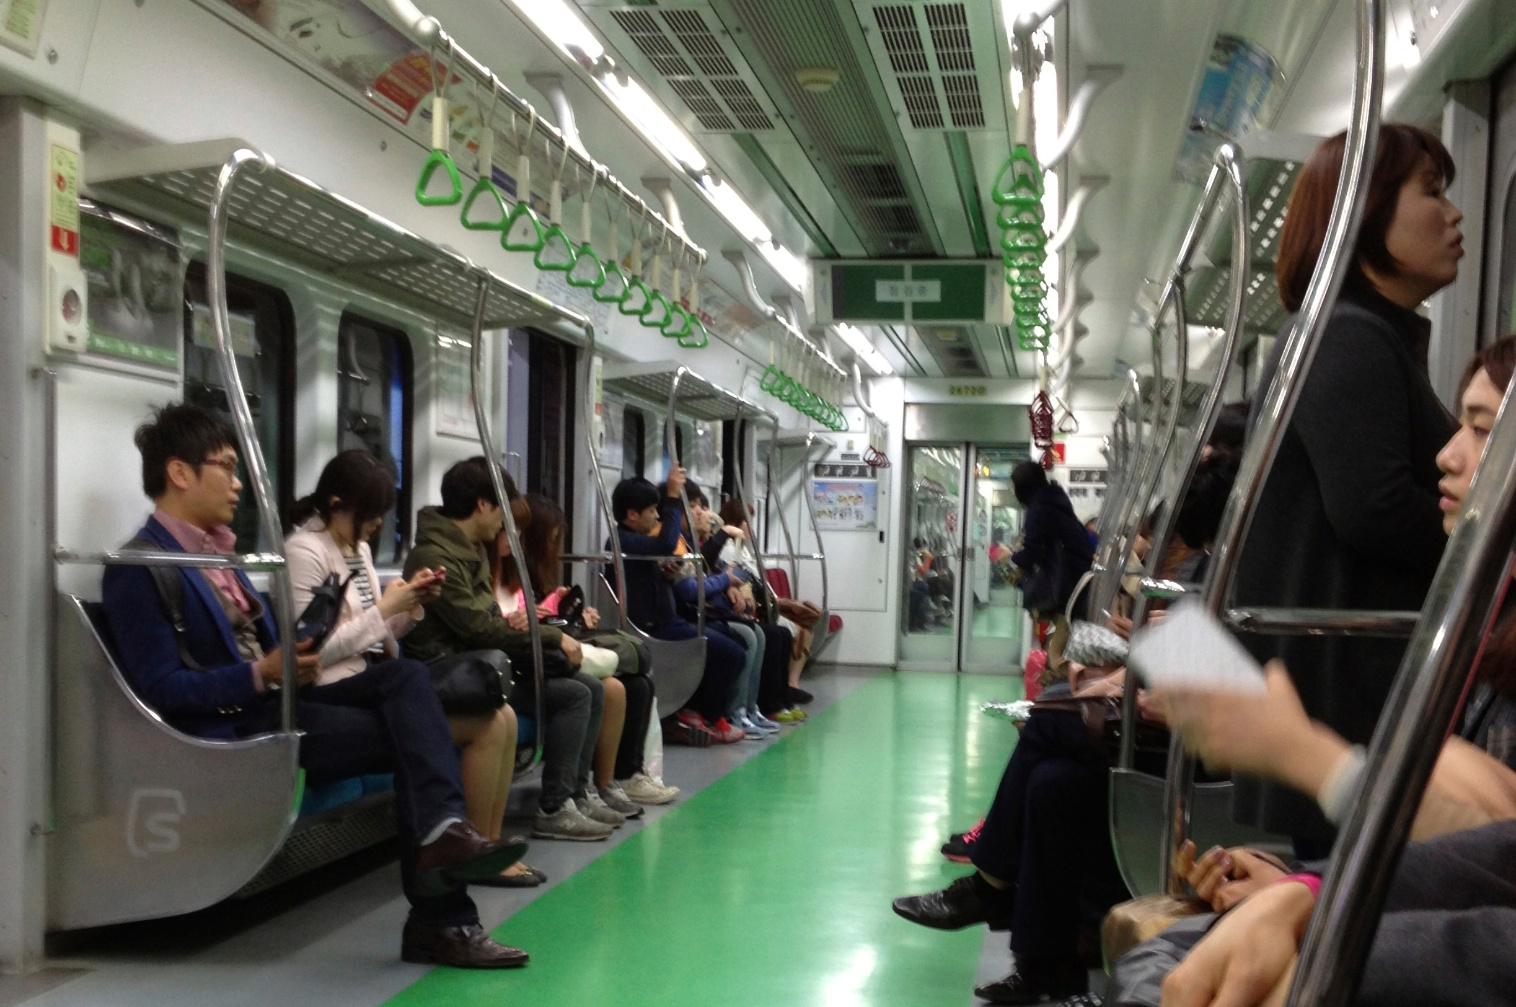 Pyeongchang 2018-themed trains unveiled on Seoul subway line |Subway South Korea